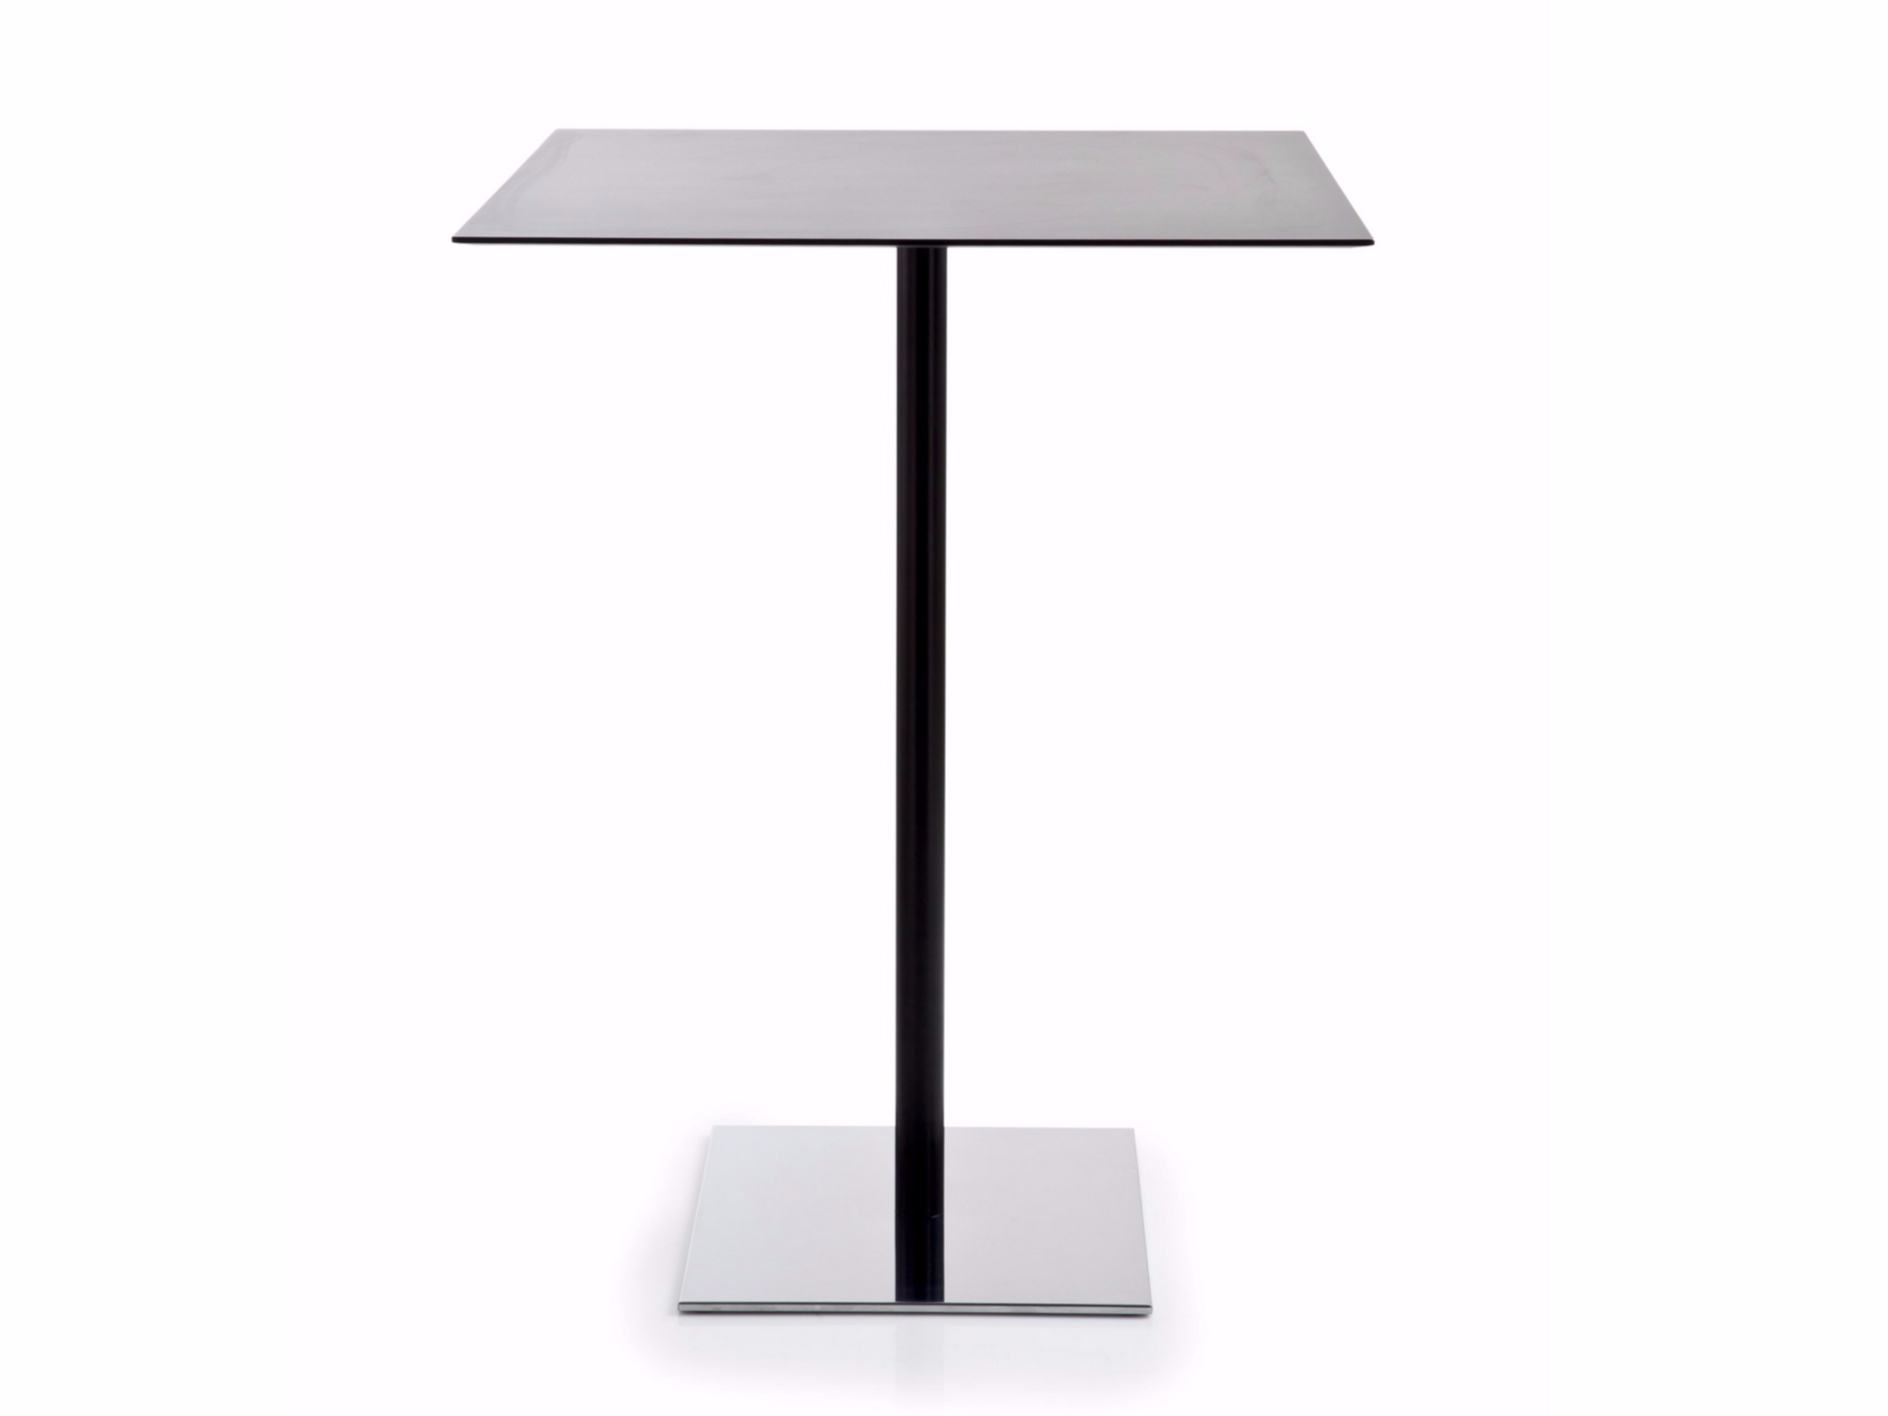 chairman  high table chairman collection by conmoto design werner  - chairman  high table chairman collection by conmoto design werneraisslinger